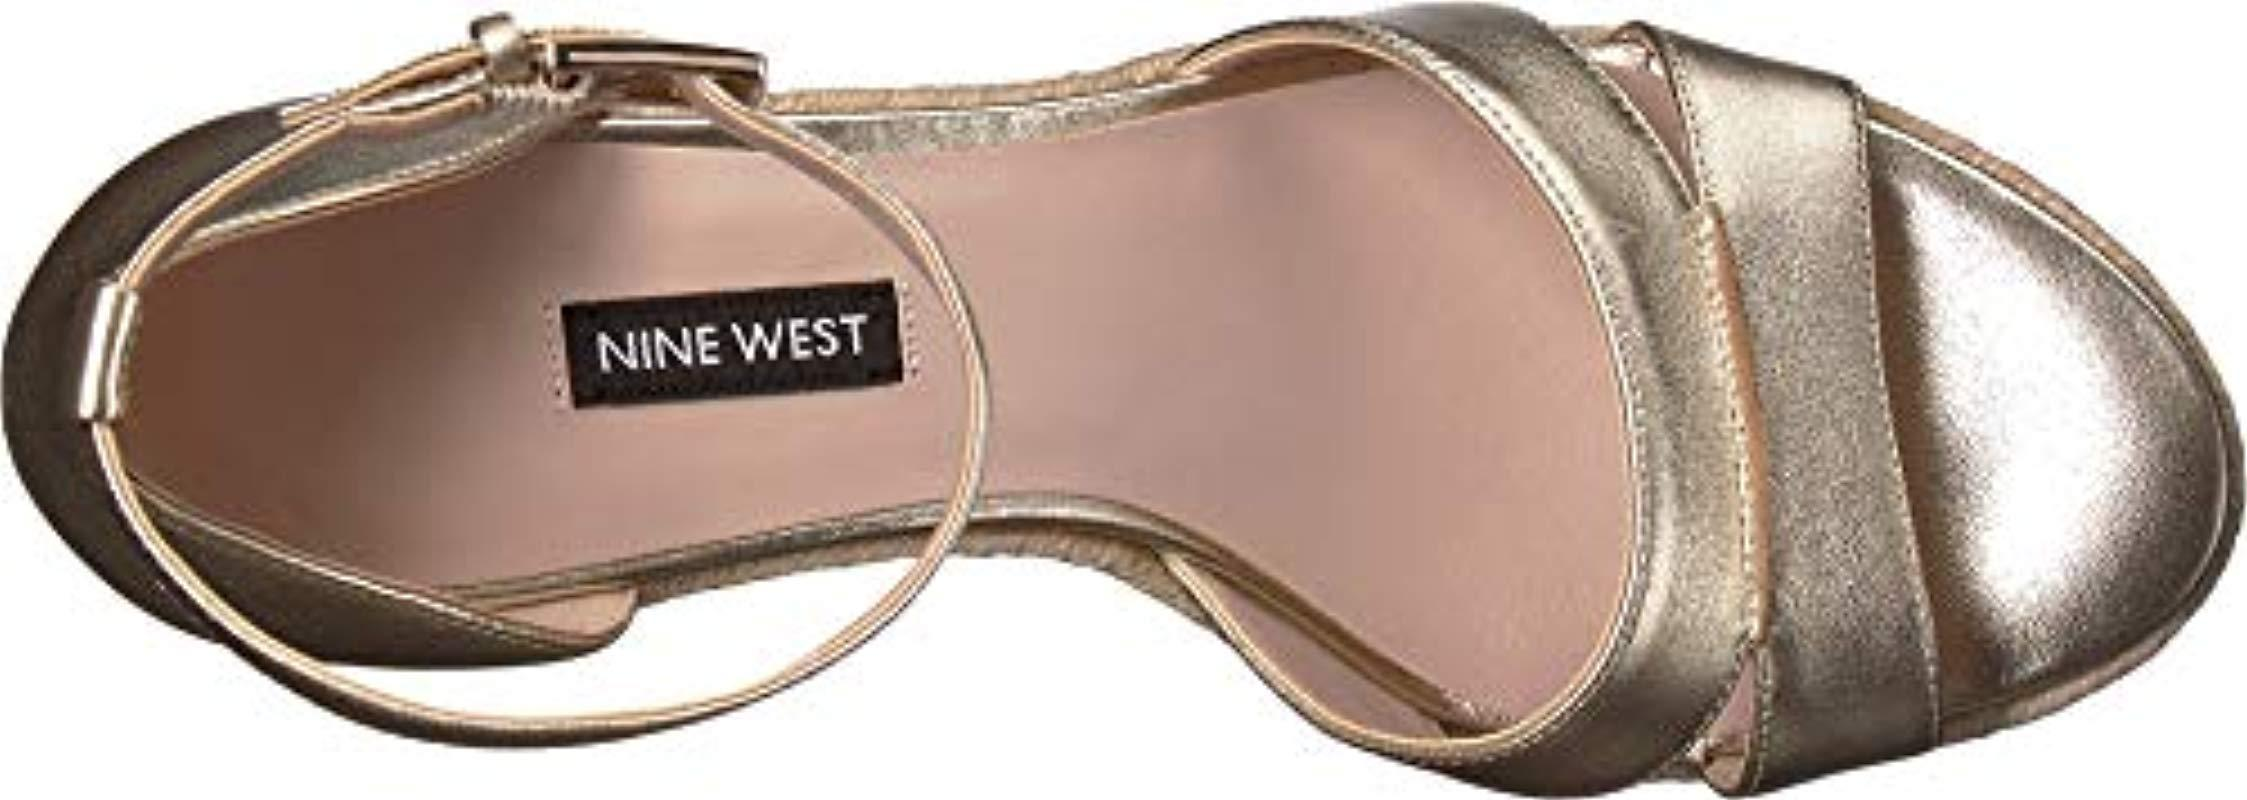 e4fc56afc10 Lyst - Nine West Jabrina Suede Wedge Sandal in Metallic